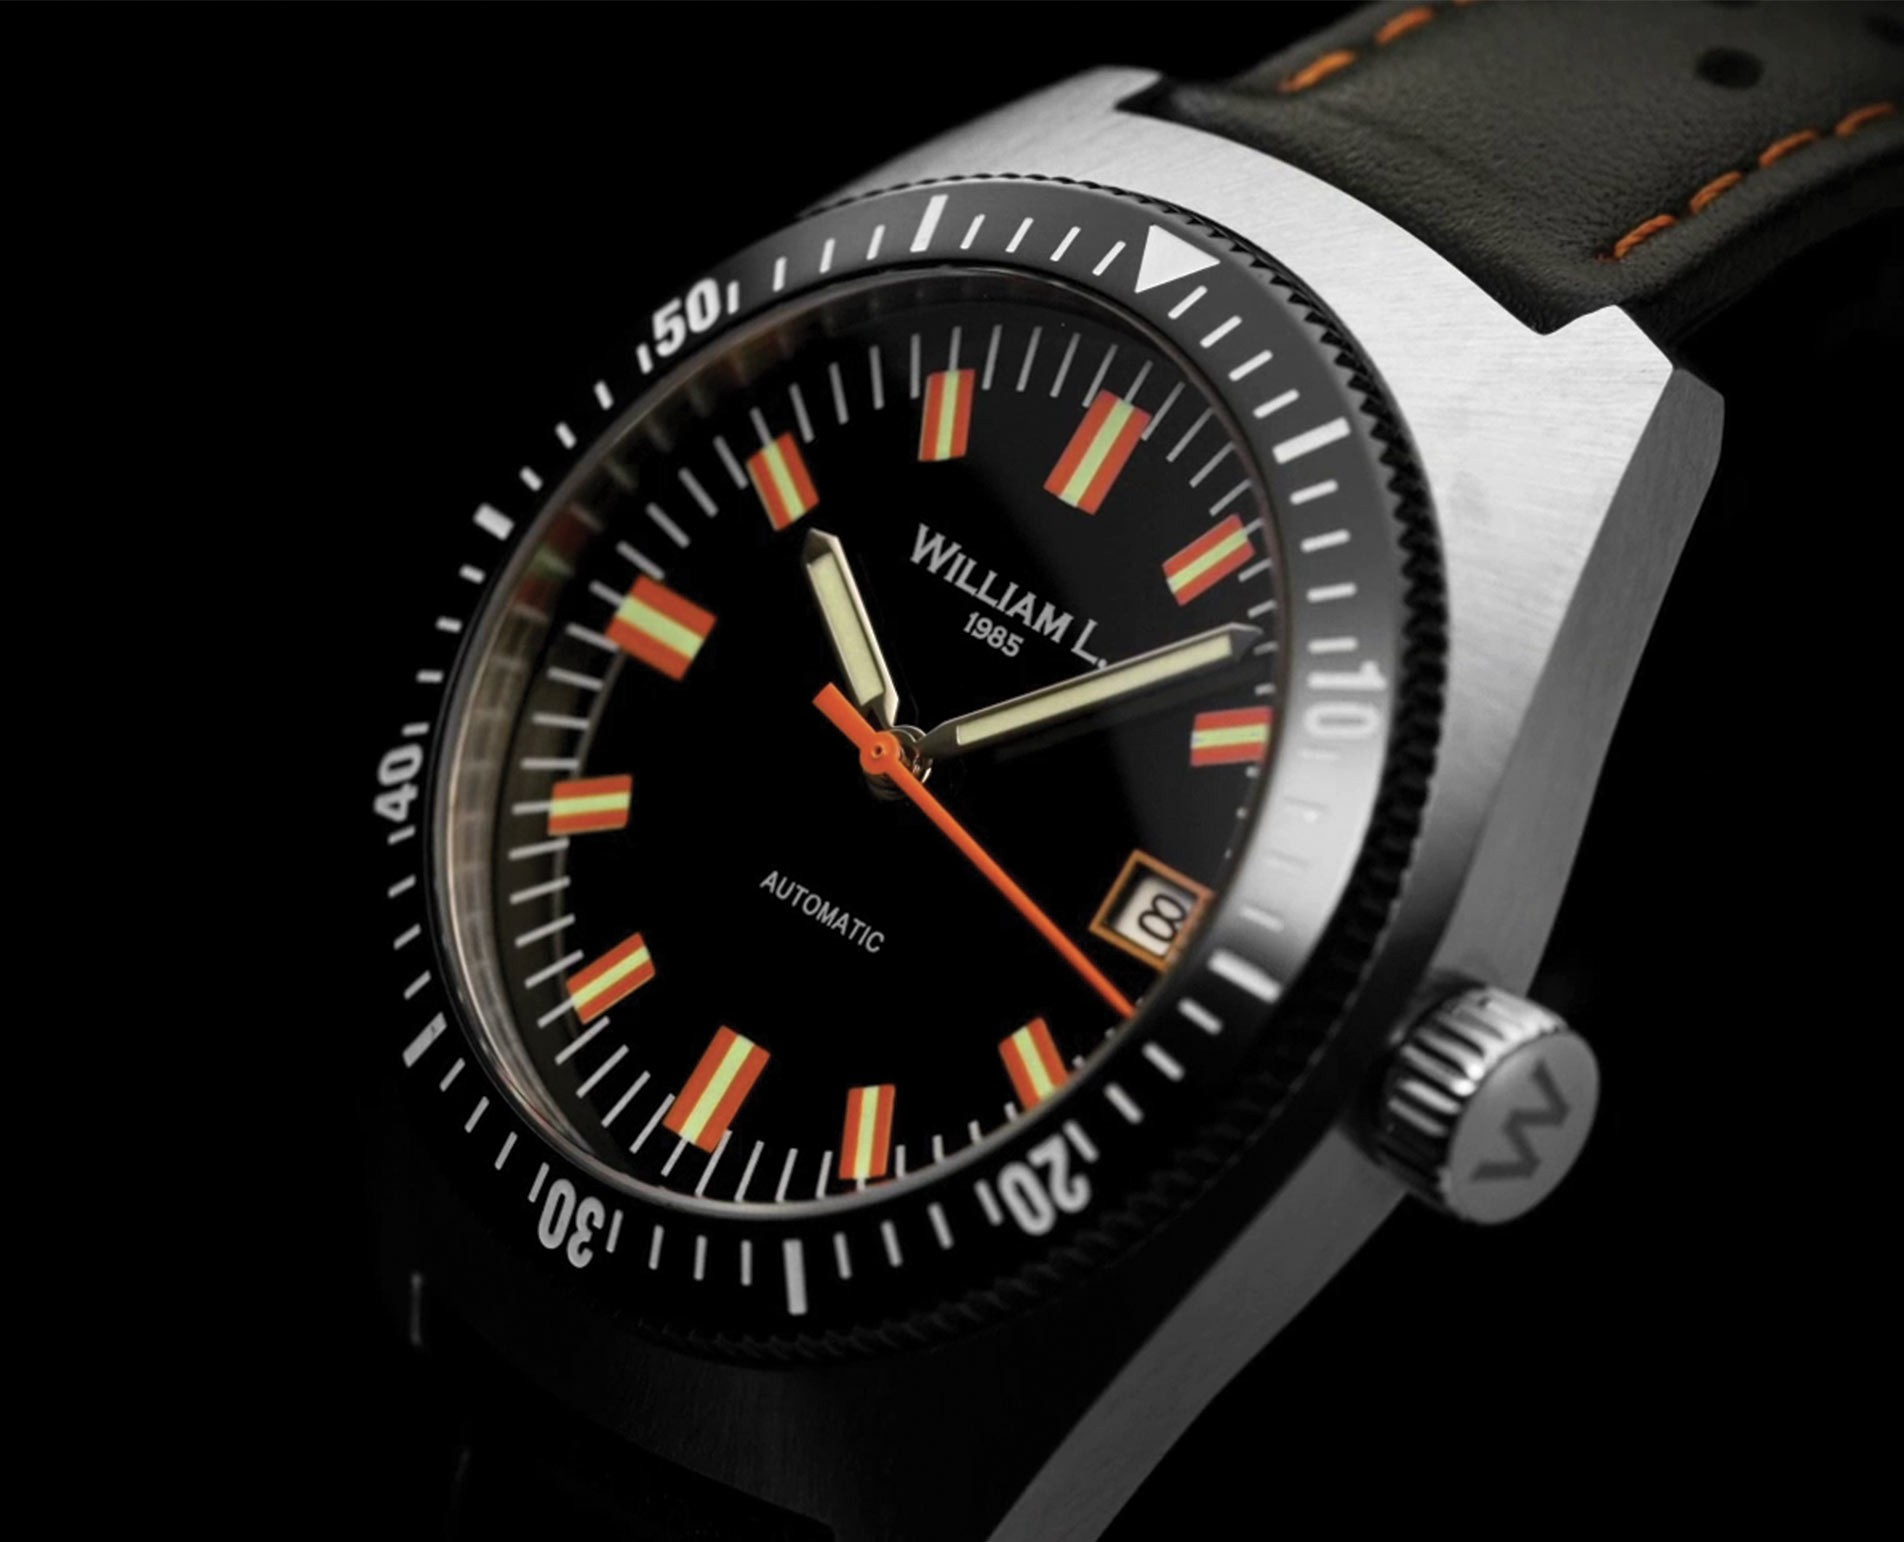 watch only style momentum field i army need the watches timex vintage